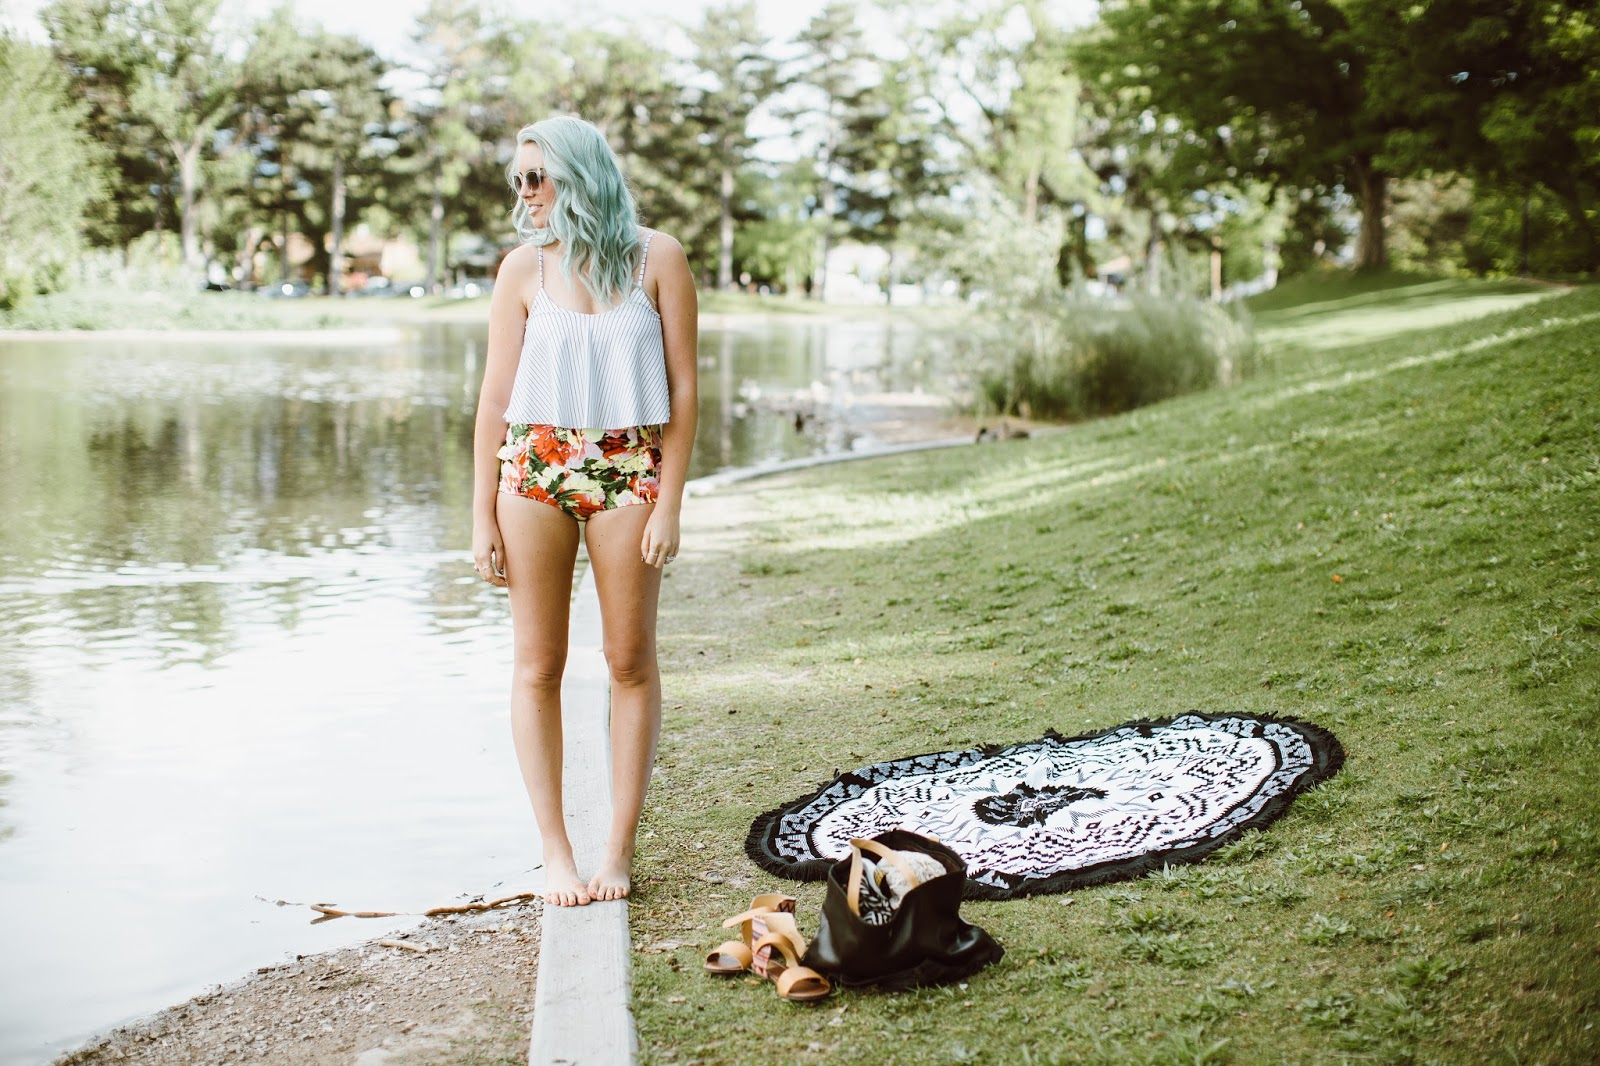 swimzip, Utah Fashion blogger, Kortni Jeane